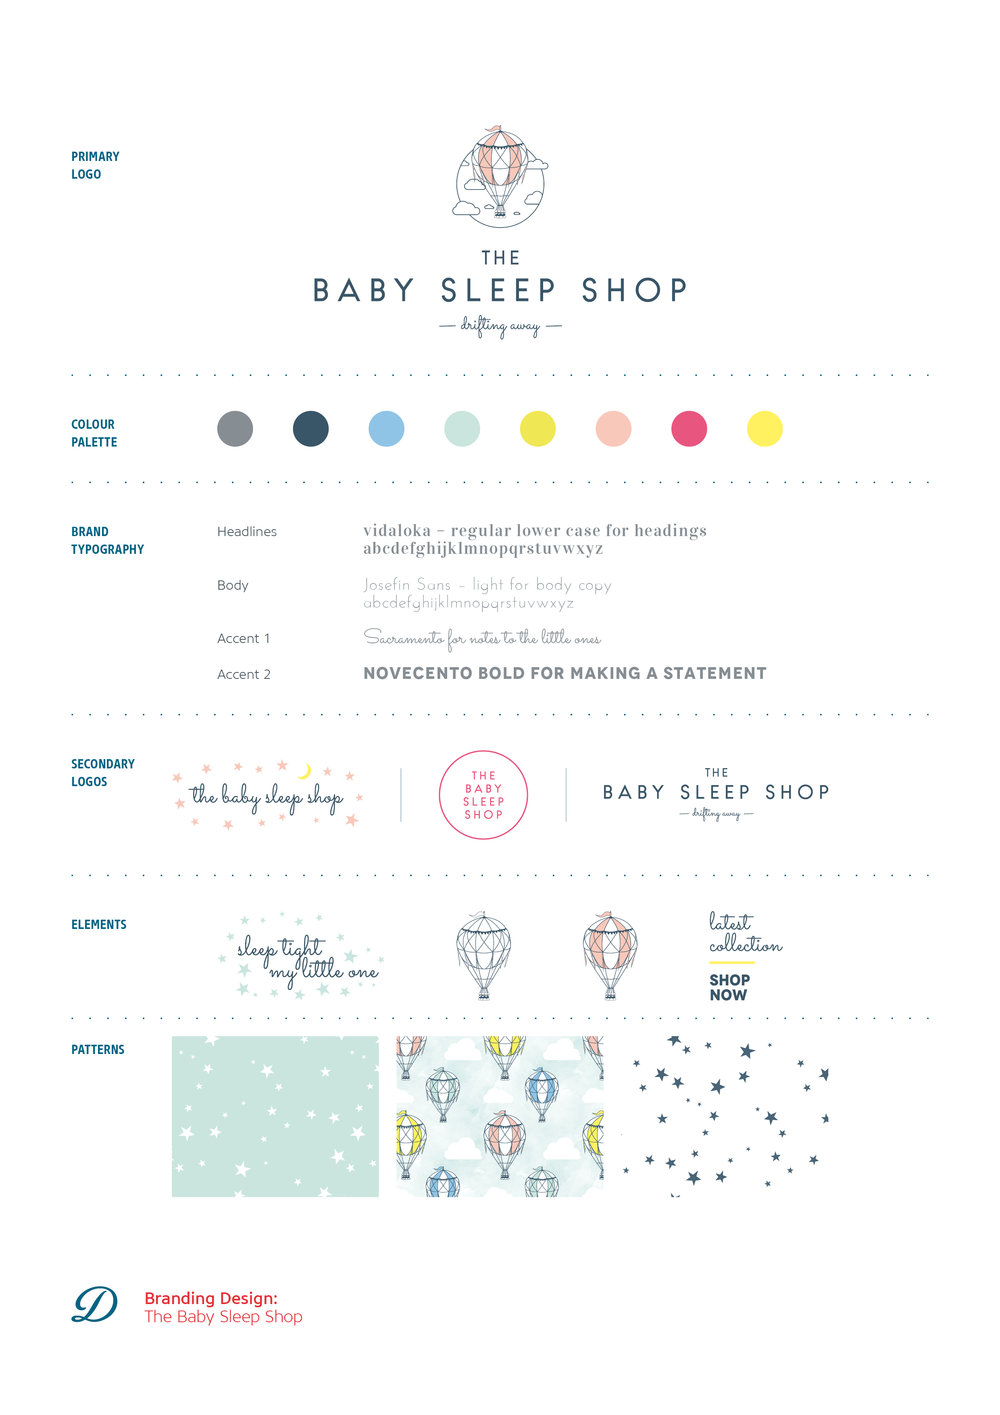 Logo design, branding and brand styling for The Baby Sleep Shop, online boutique for quality baby sleepwear. Brand by Ditto Creative Brand stylists, branding agency Kent